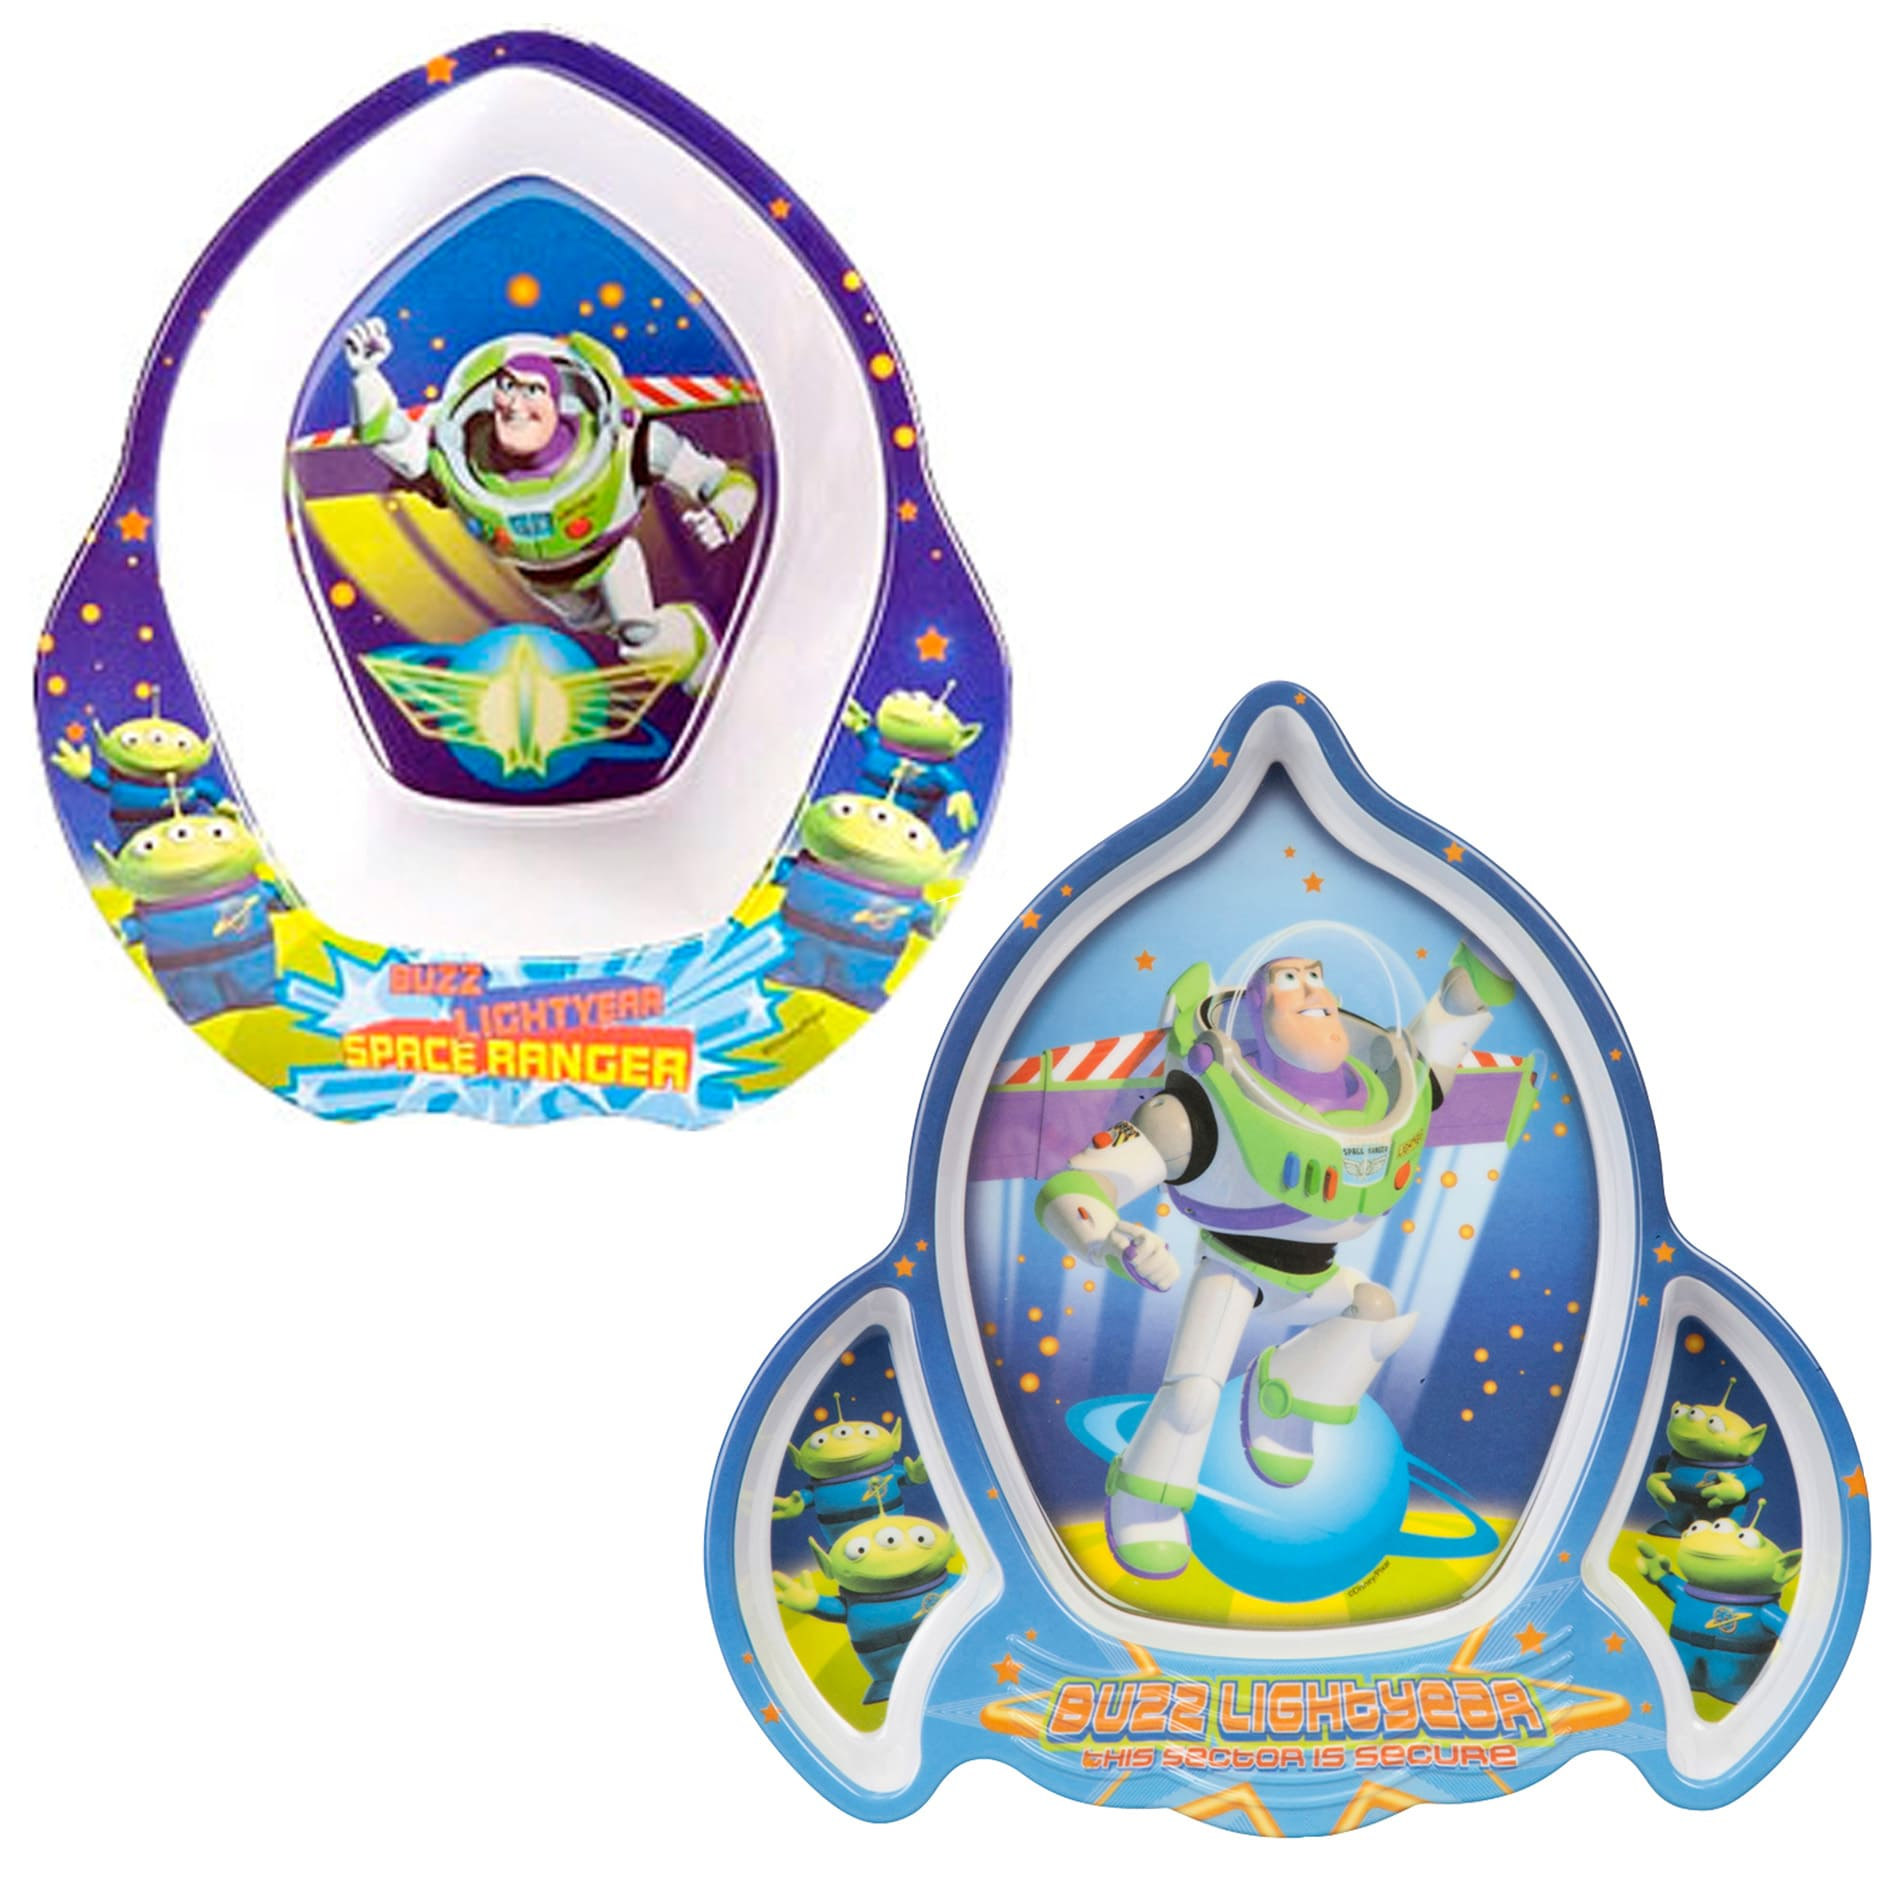 Toy Story Rocket Bowl and Plate Set